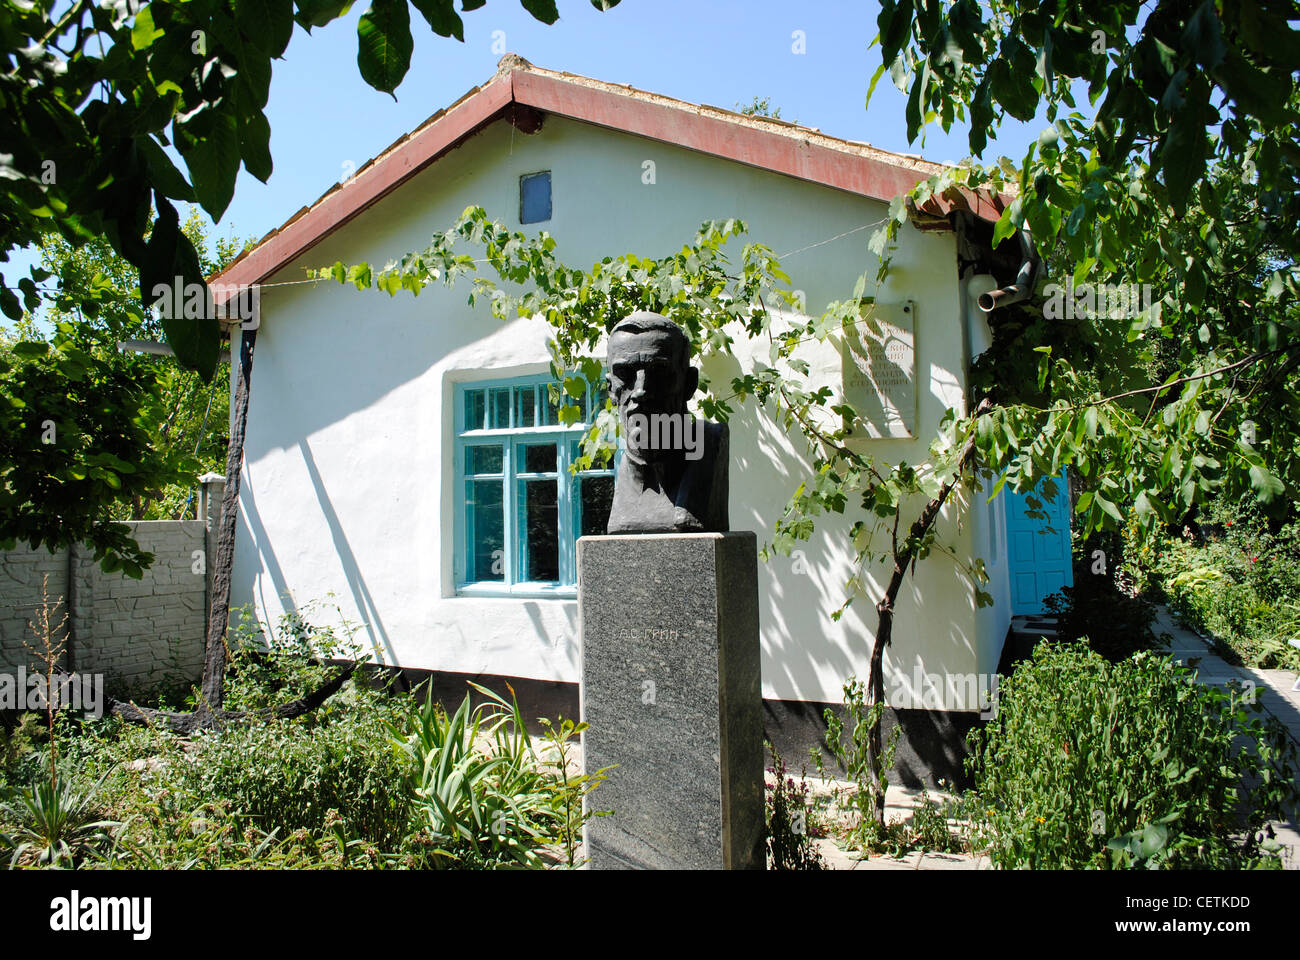 Ukraine. Autonomous Republic of Crimea. Feodosiya. Alexander Grin (1880-1932). Russian writer. House-Museum. Exterior. - Stock Image